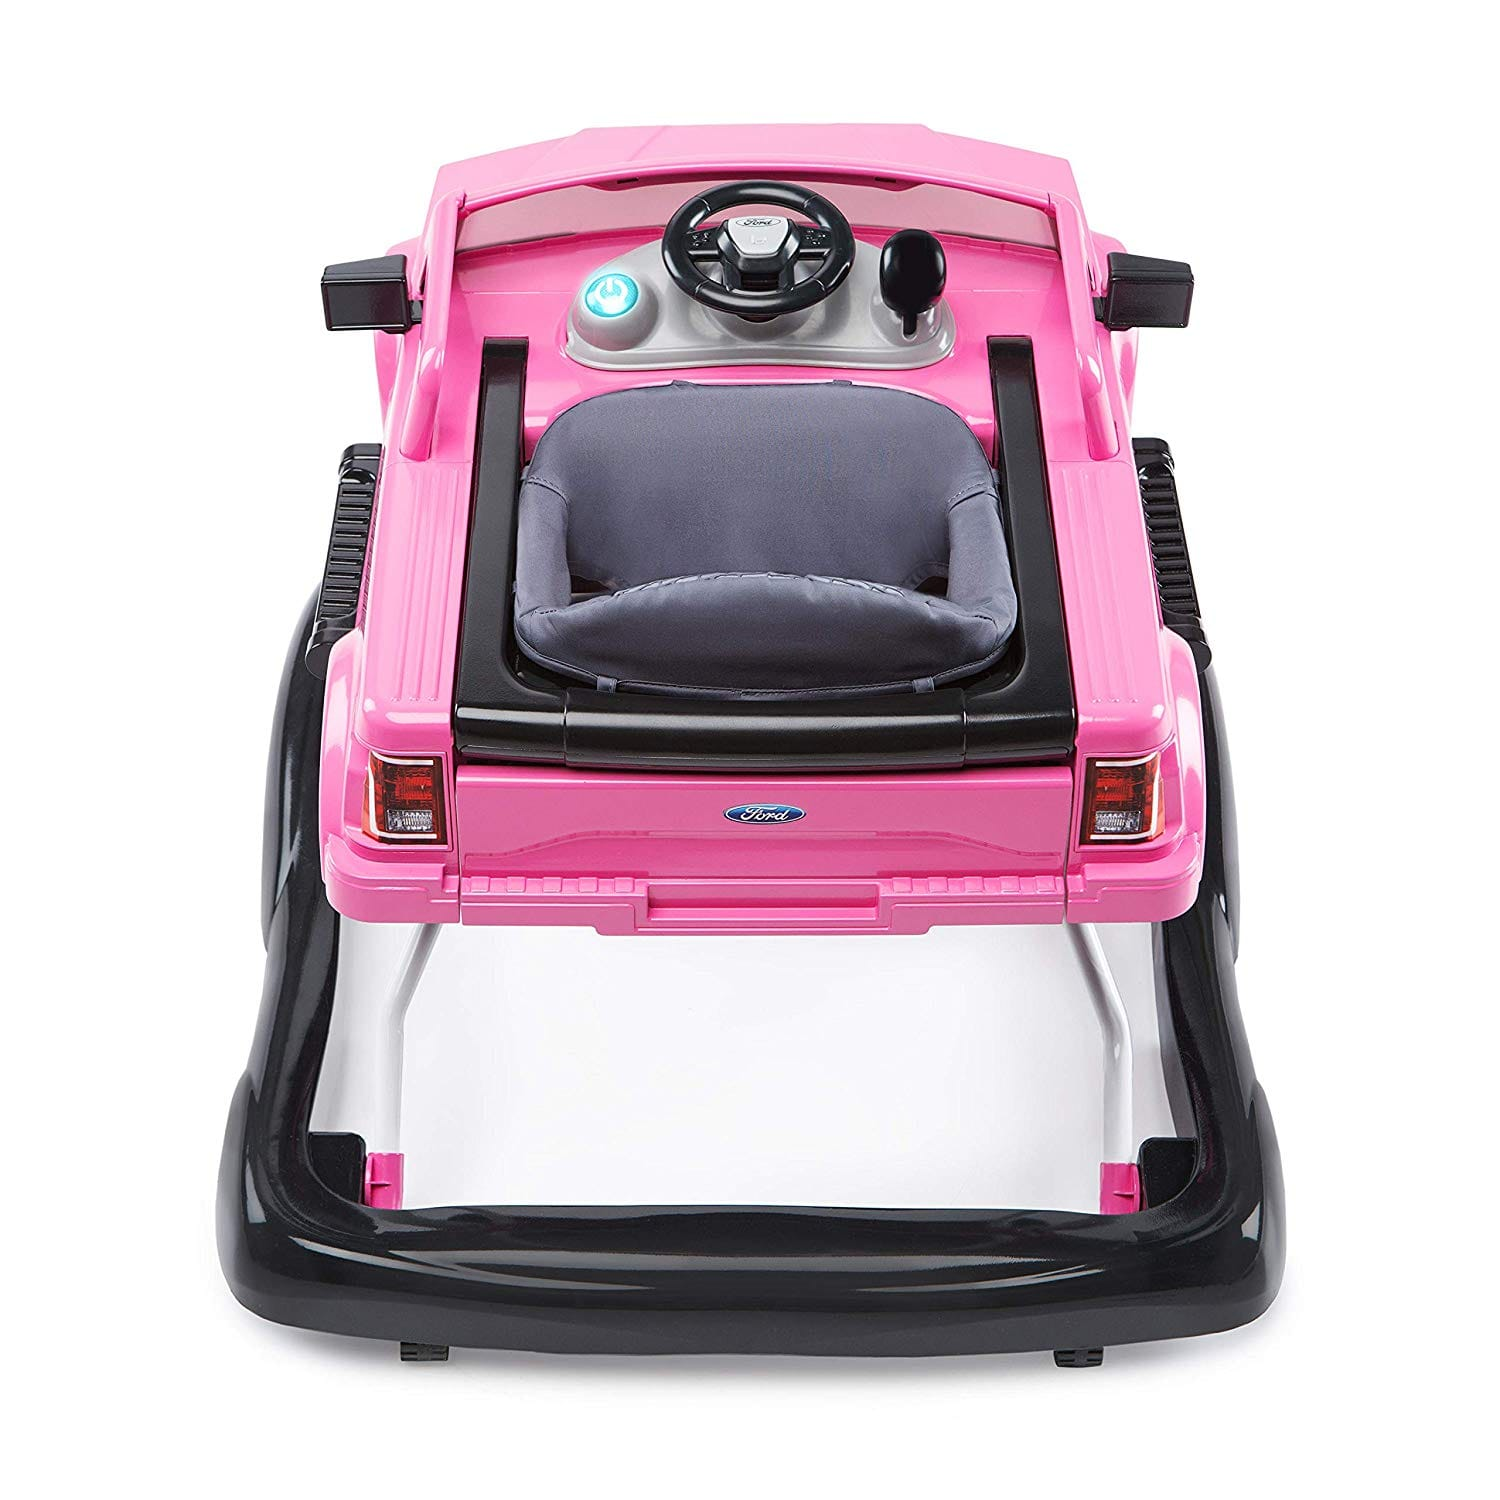 Bright Starts 3 Ways to Play Walker - Ford F-150, Pink, Ages 6 months+  $42